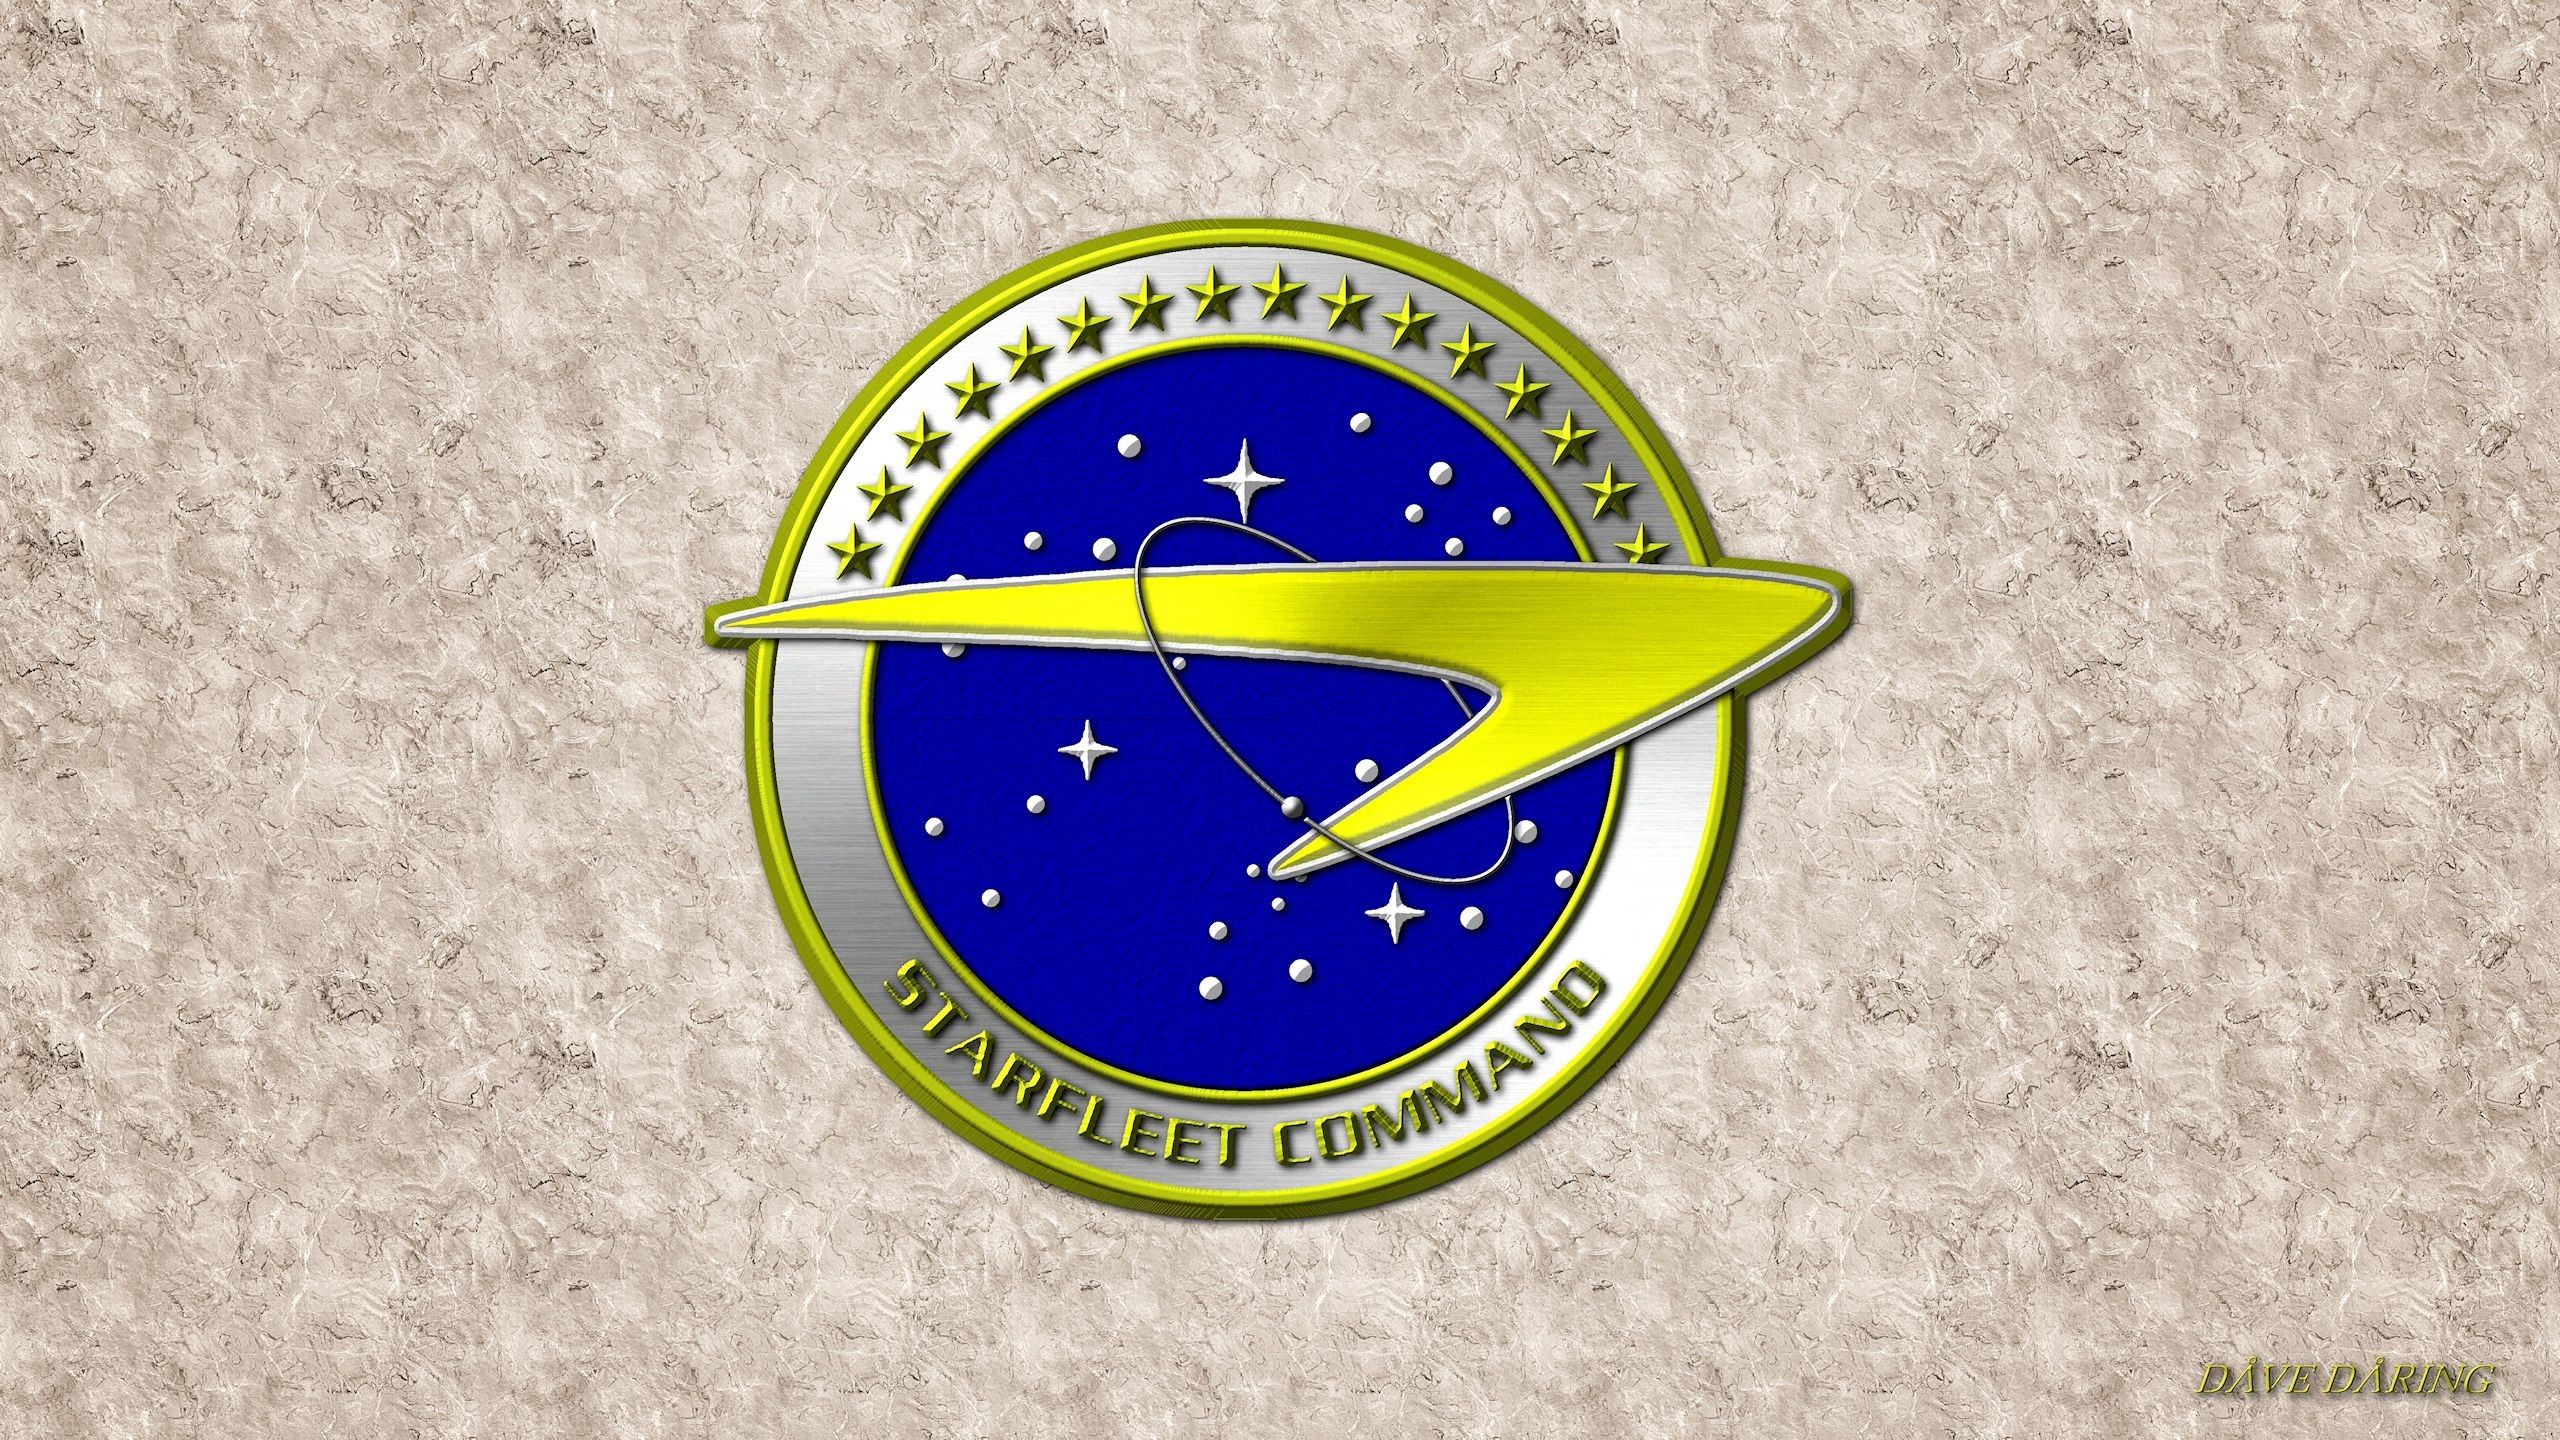 Res: 2560x1440, ... Enterprise Era Starfleet Command Emblem by Dave-Daring